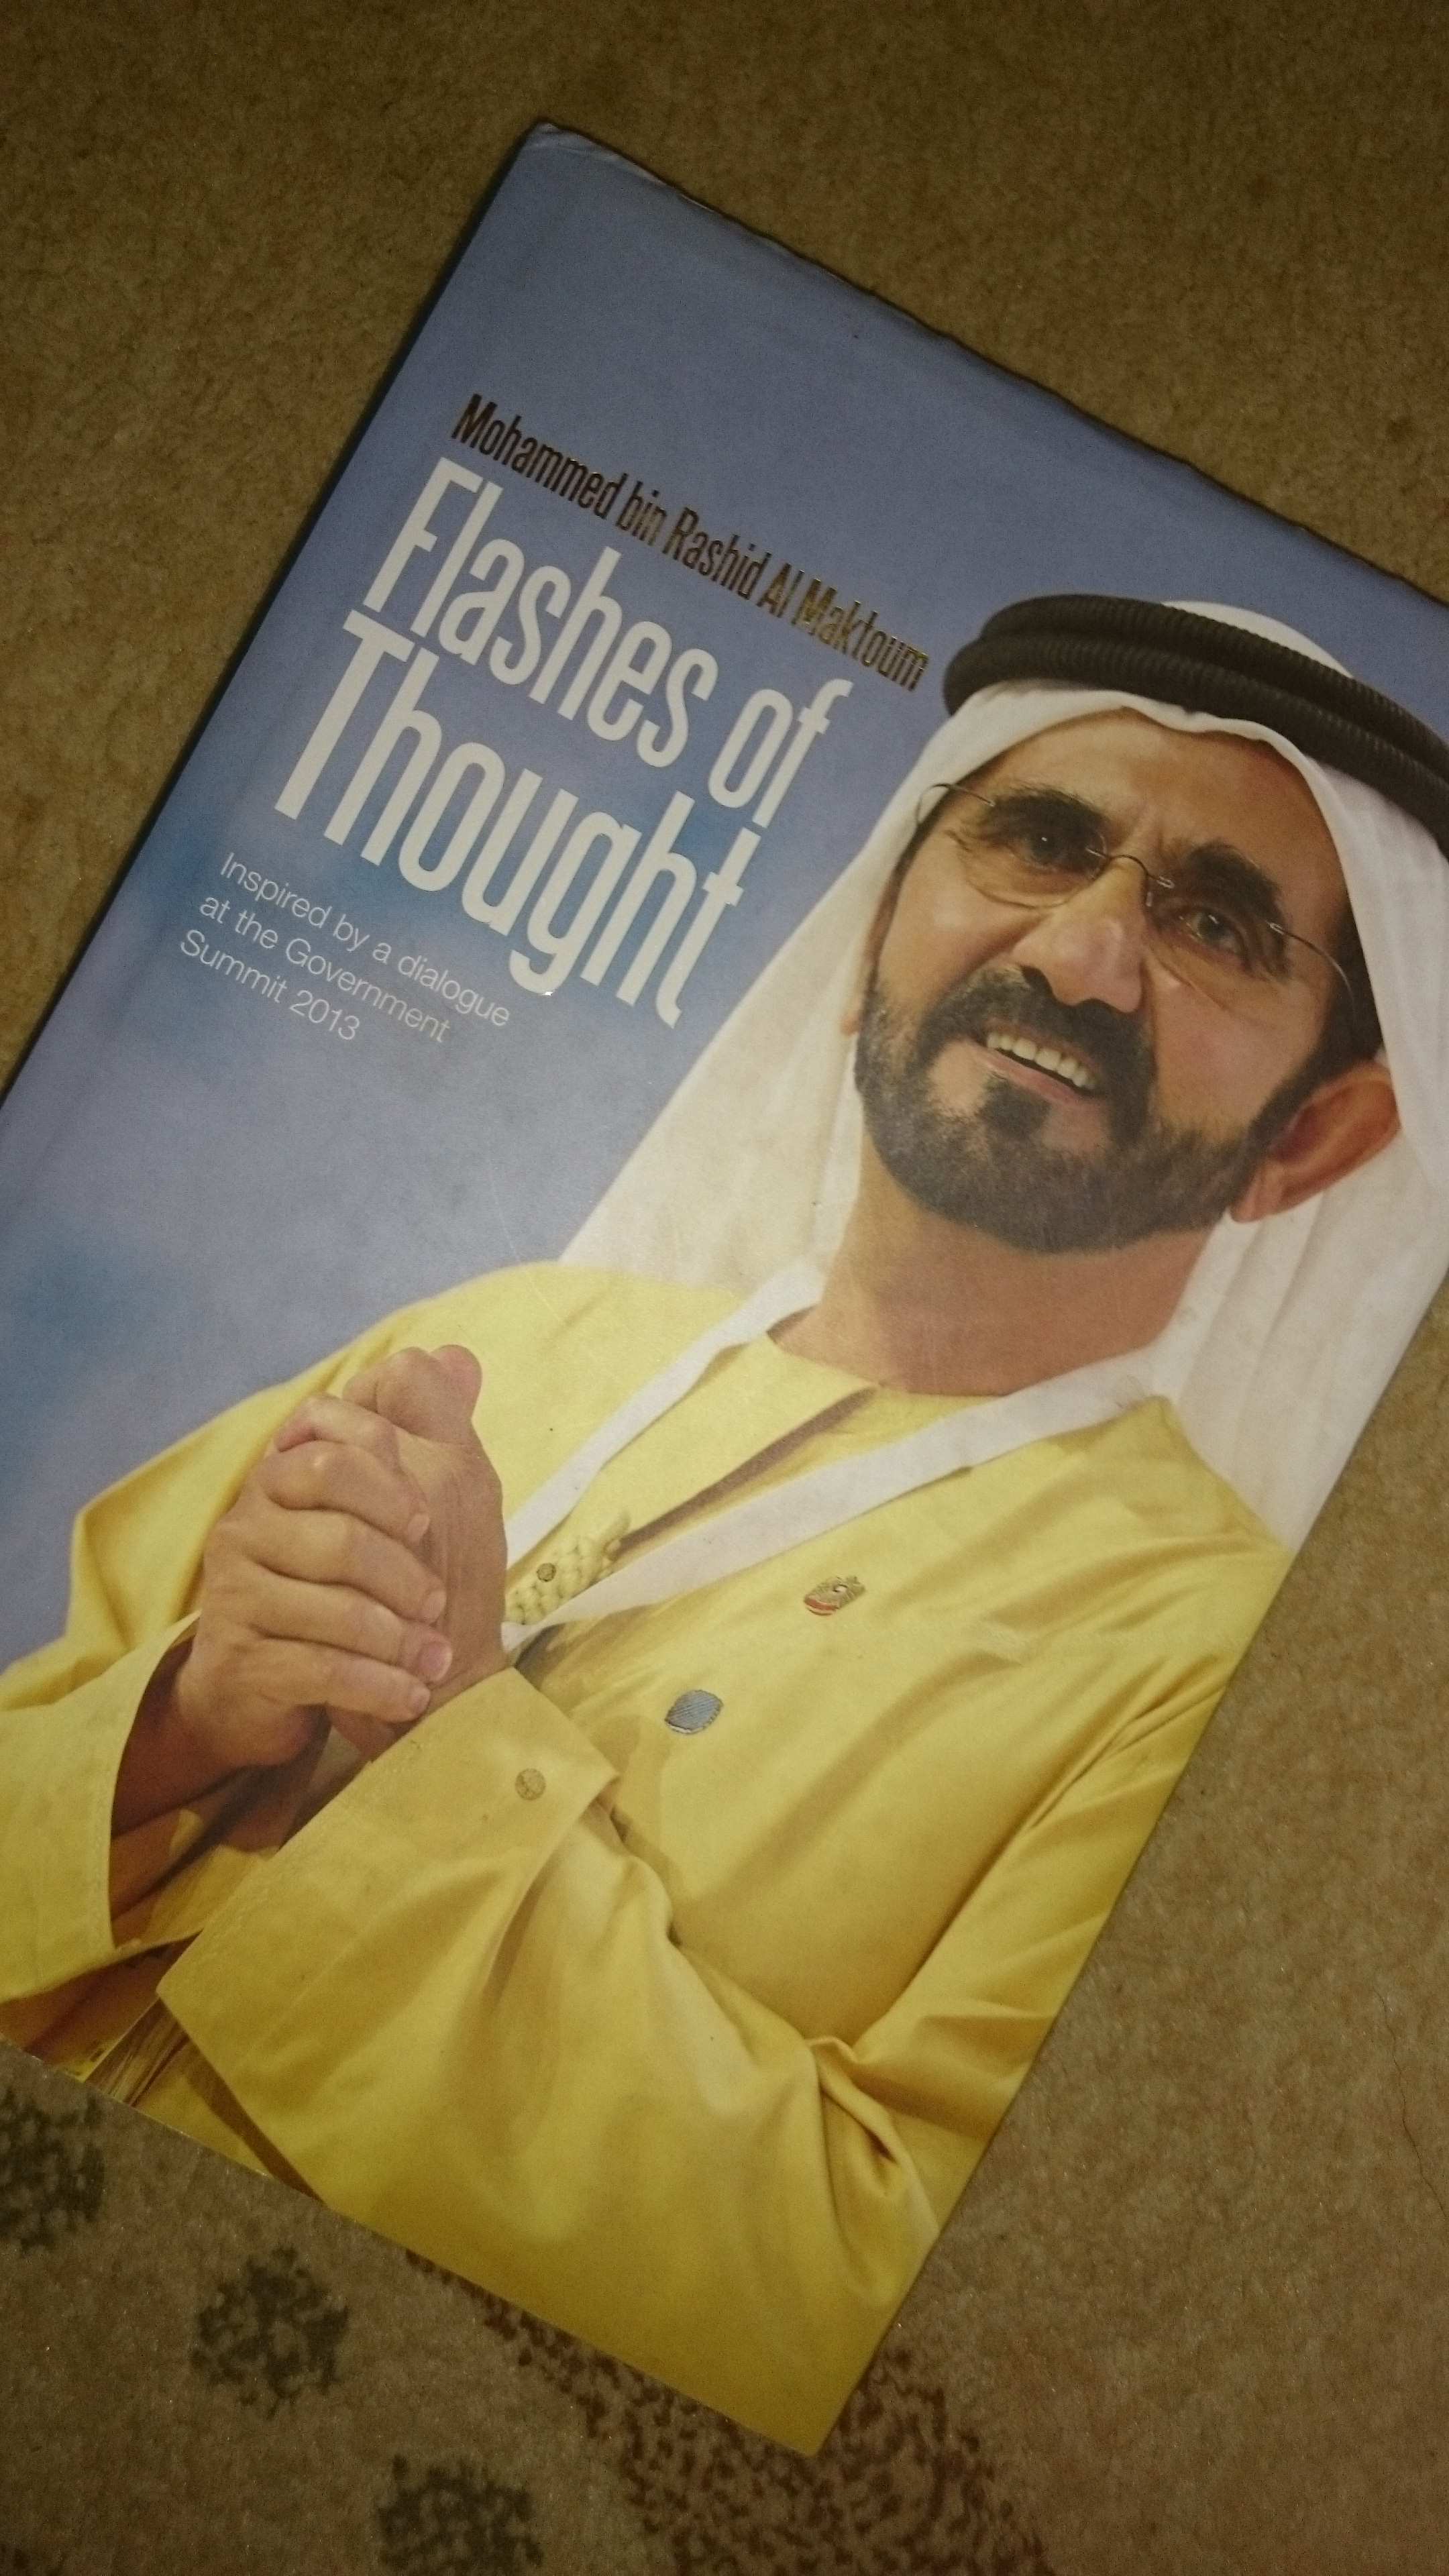 Motivational Quotes From The Book Flashes Of Thought By The